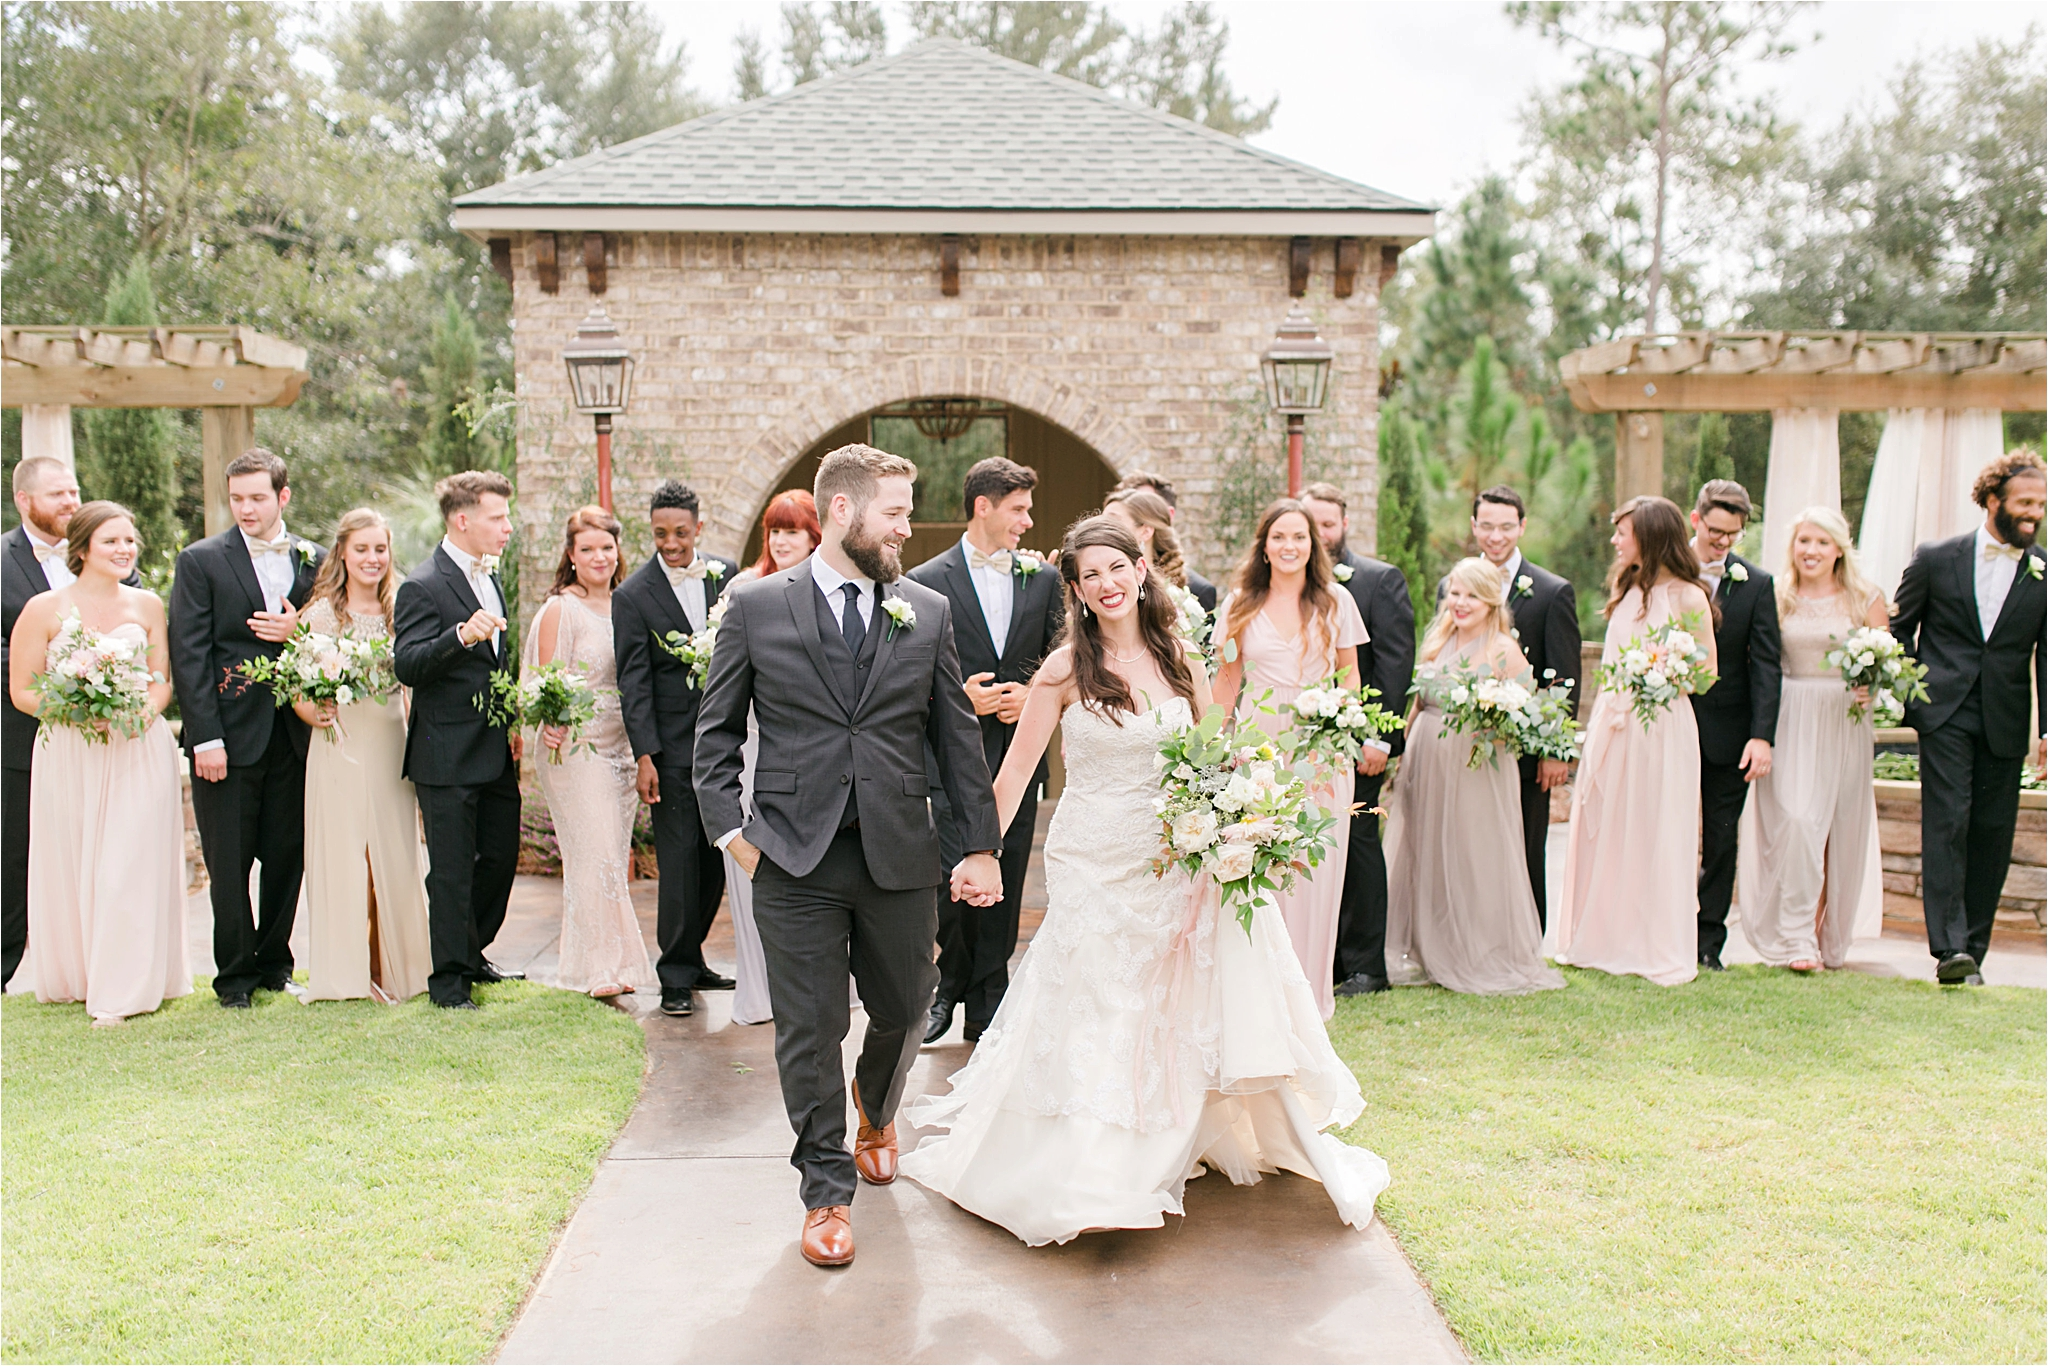 Wedding party-bella sera gardens-alabama-large wedding party-blushes-neutrals-creams